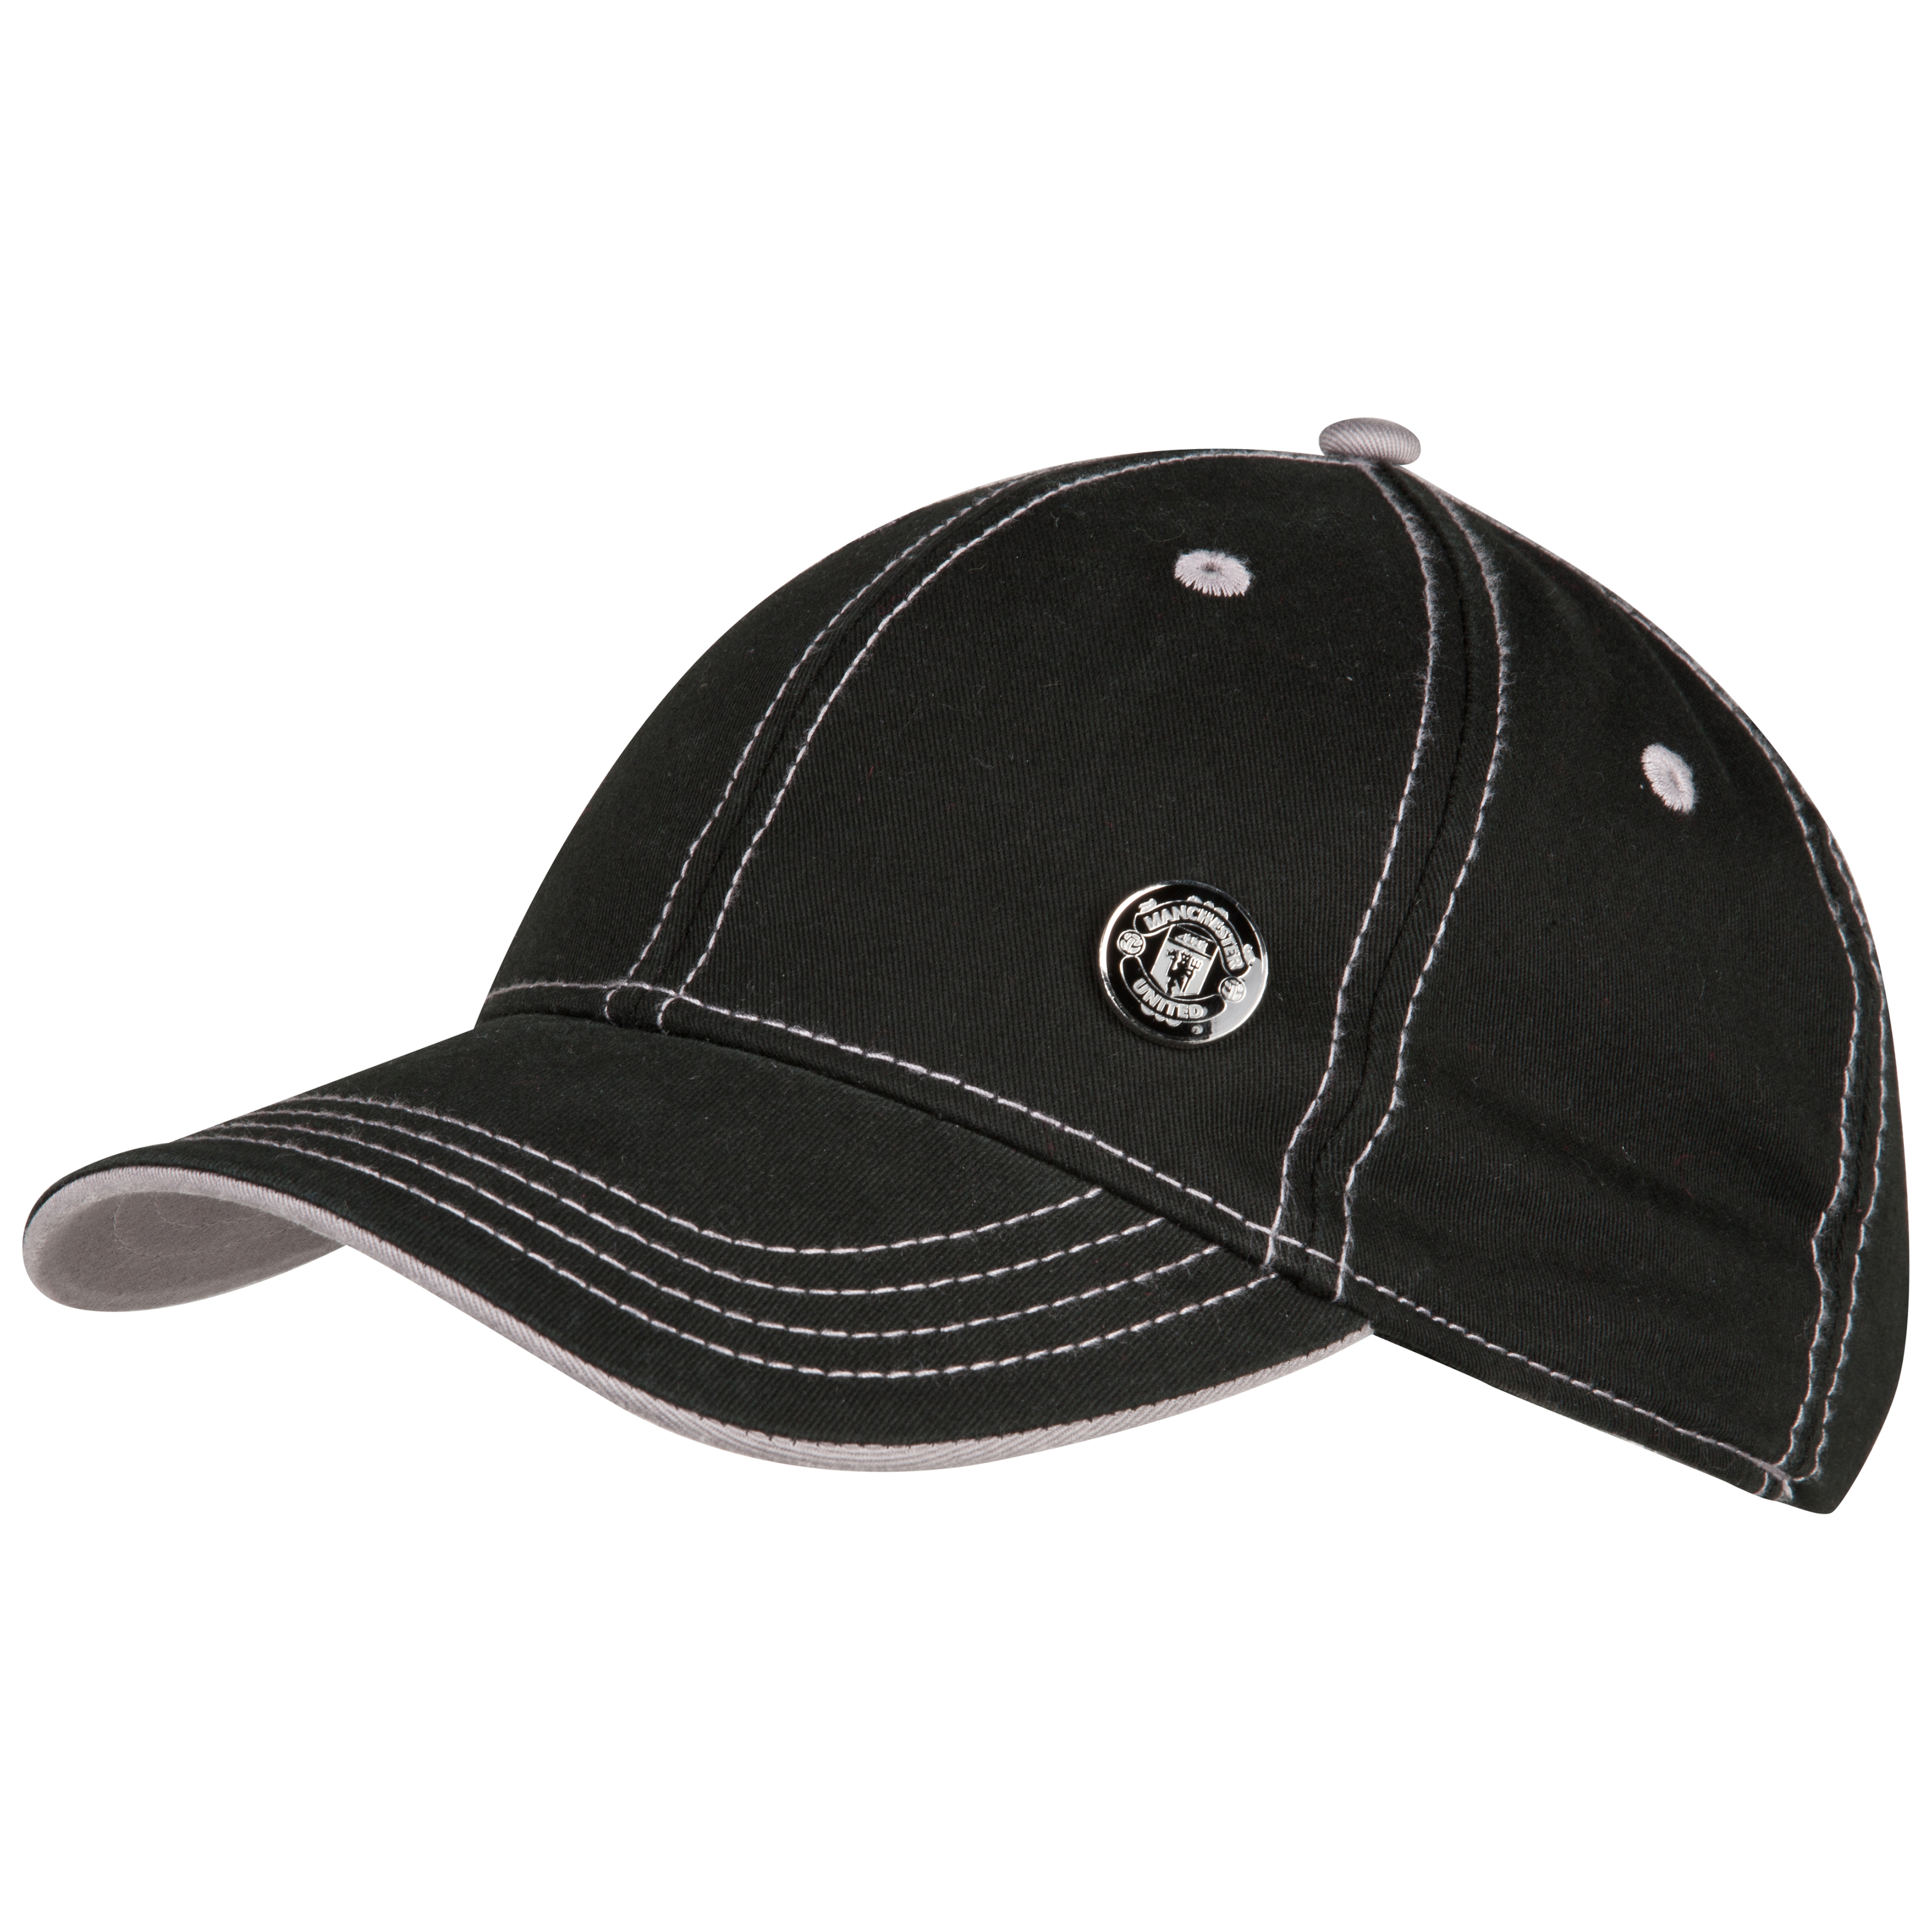 Manchester United Mono Crest Baseball Cap - Black - Mens